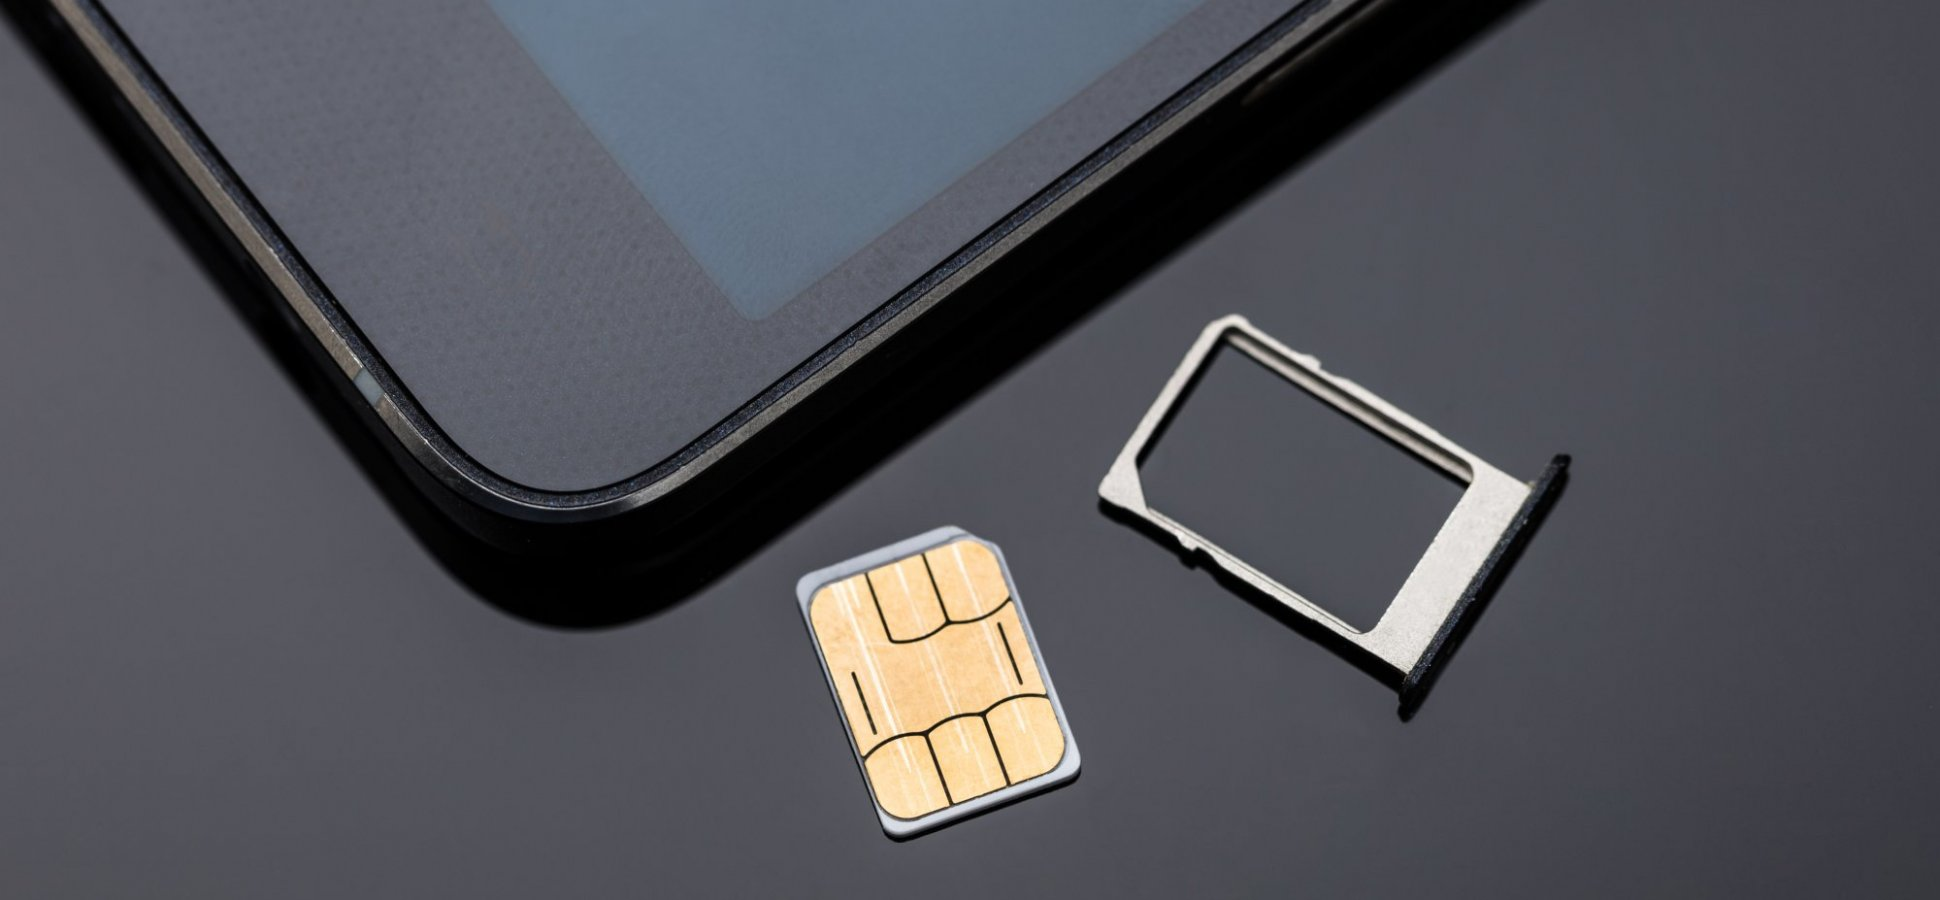 SIM-Swapping Is One of The Biggest Cyber Security Threats You Face and Almost No One Is Trying to Fix It. Here's Why It Matter